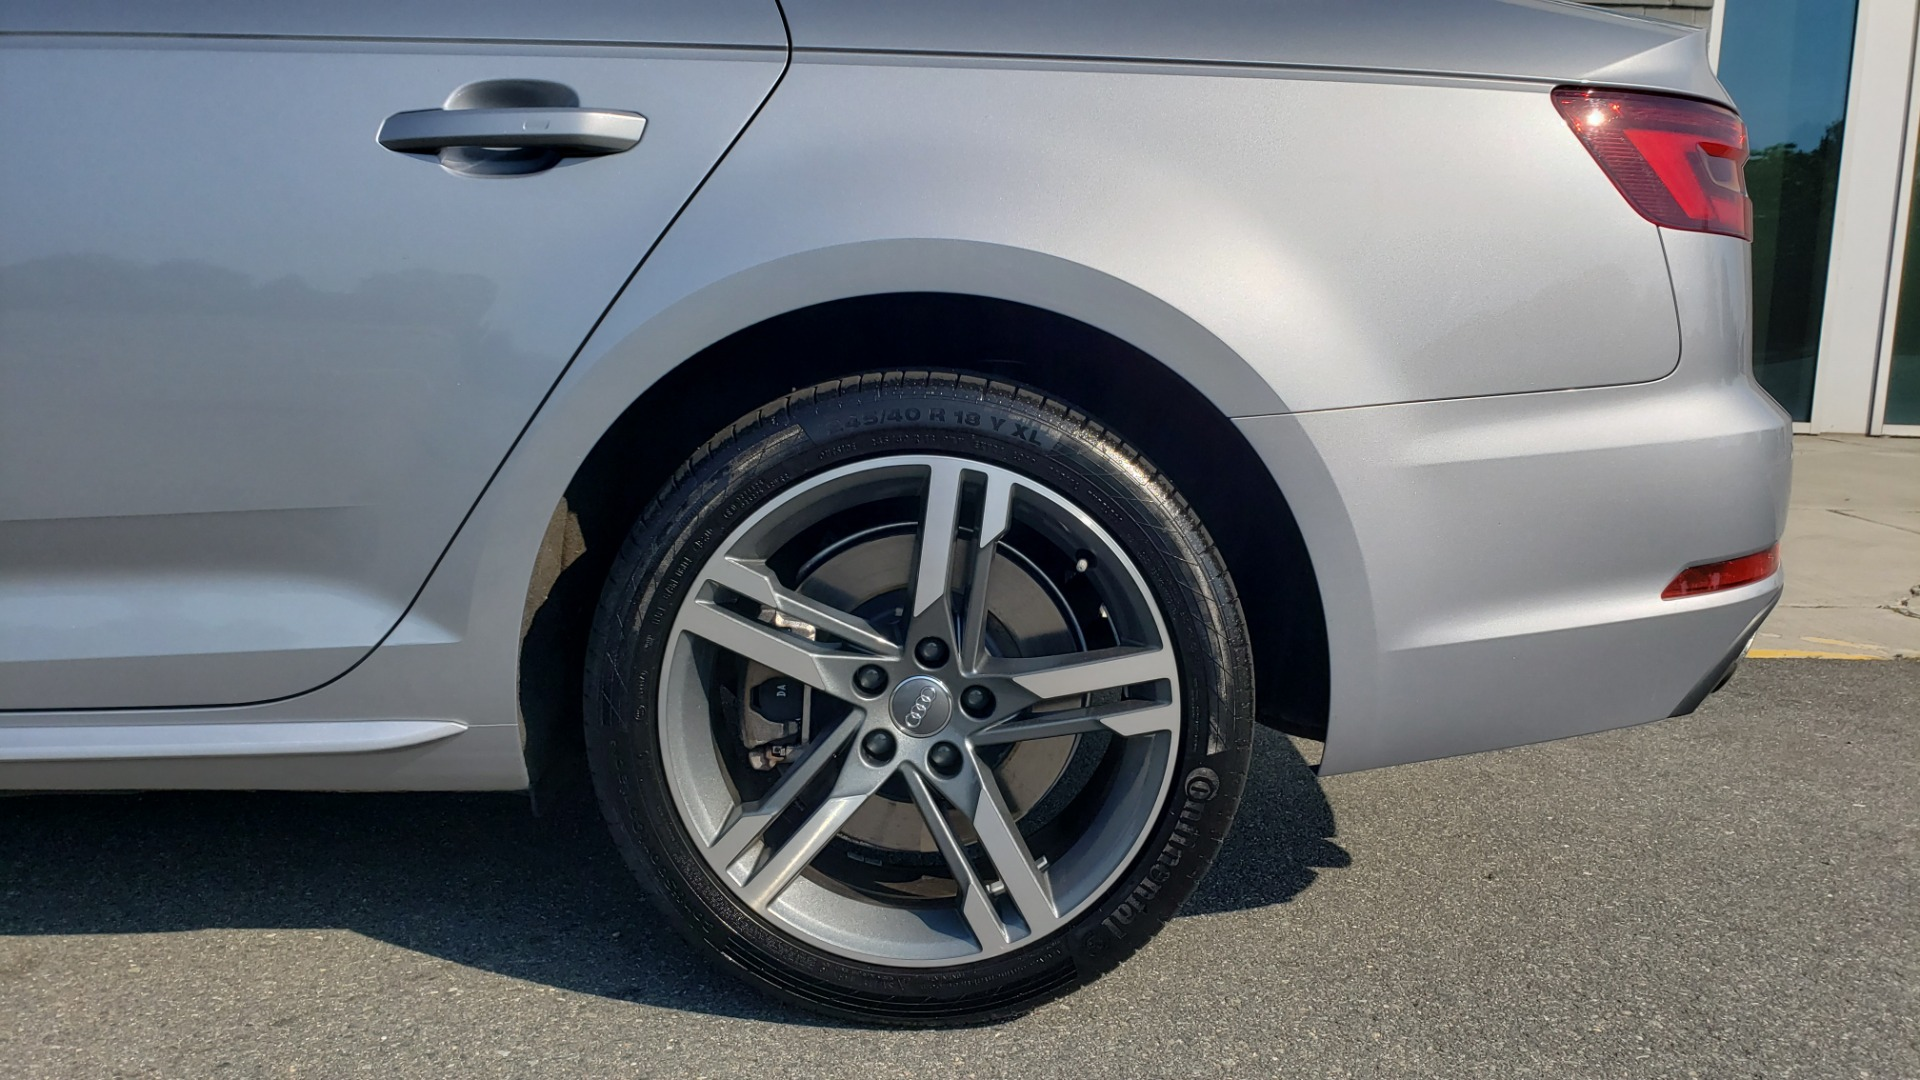 Used 2018 Audi A4 PREMIUM PLUS 2.0T / NAV / SUNROOF / B&O SND / CLD WTHR / REARVIEW for sale $29,395 at Formula Imports in Charlotte NC 28227 81